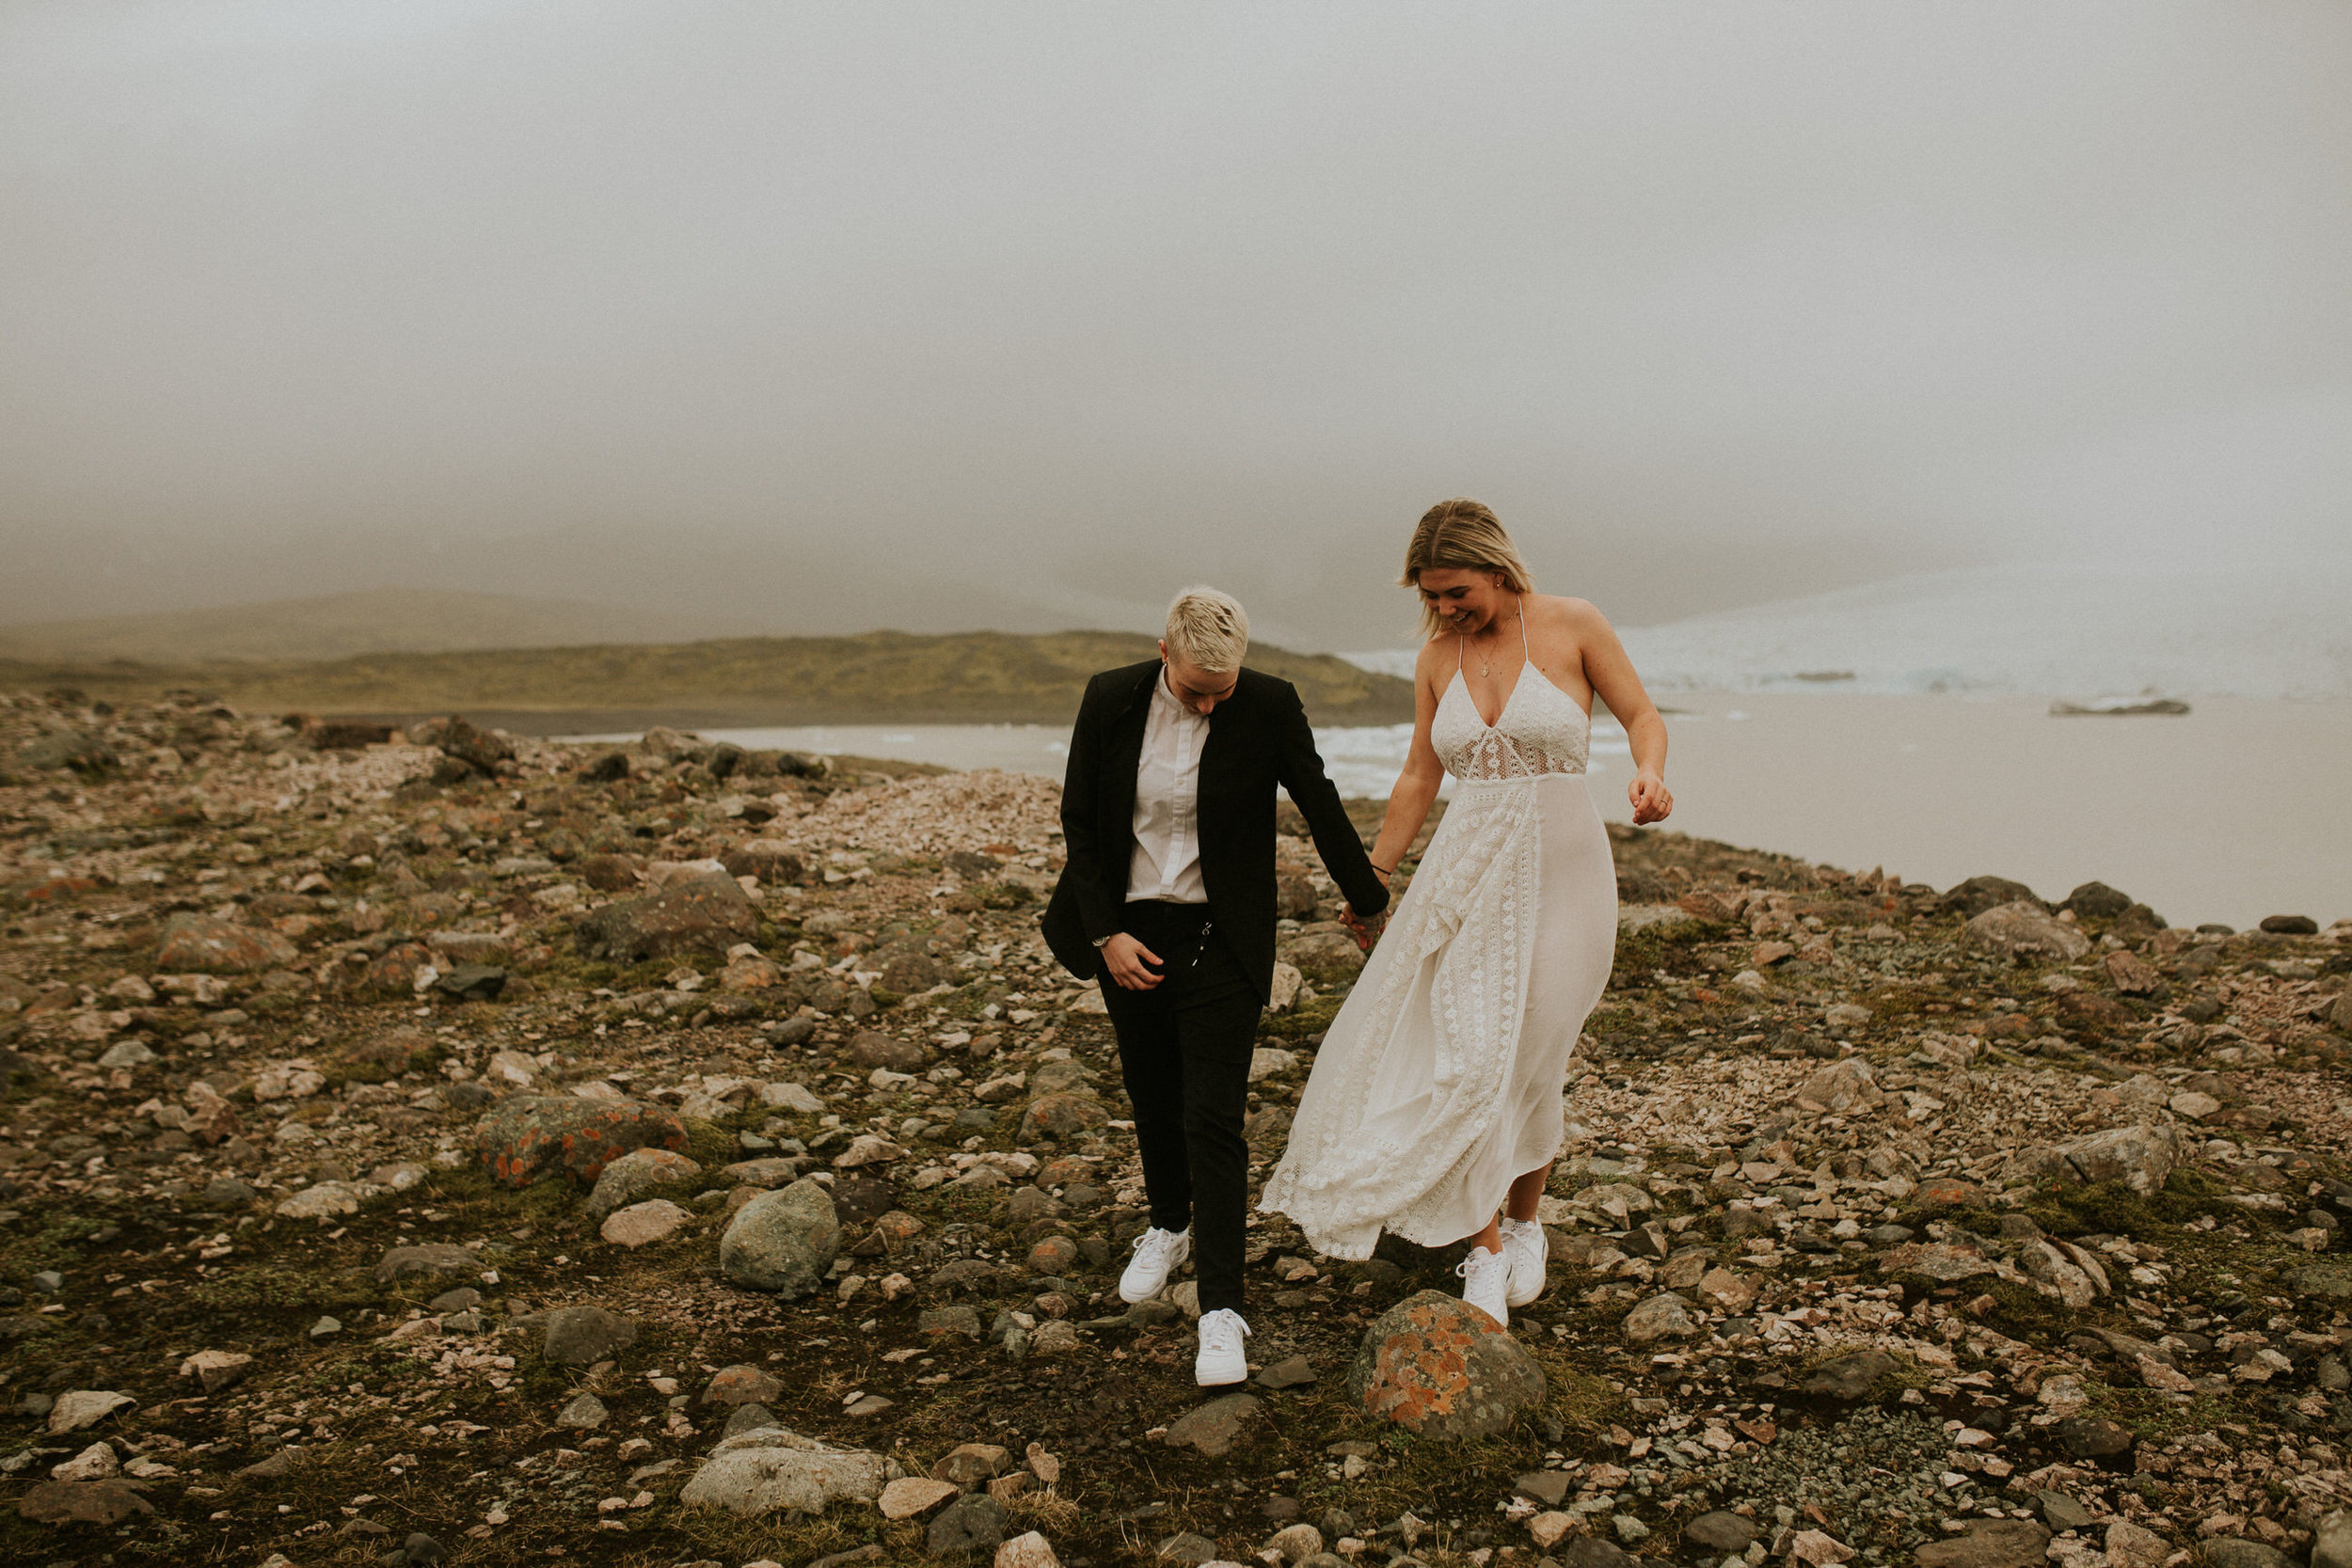 iceberg lagoon in iceland vow renewal lgbt